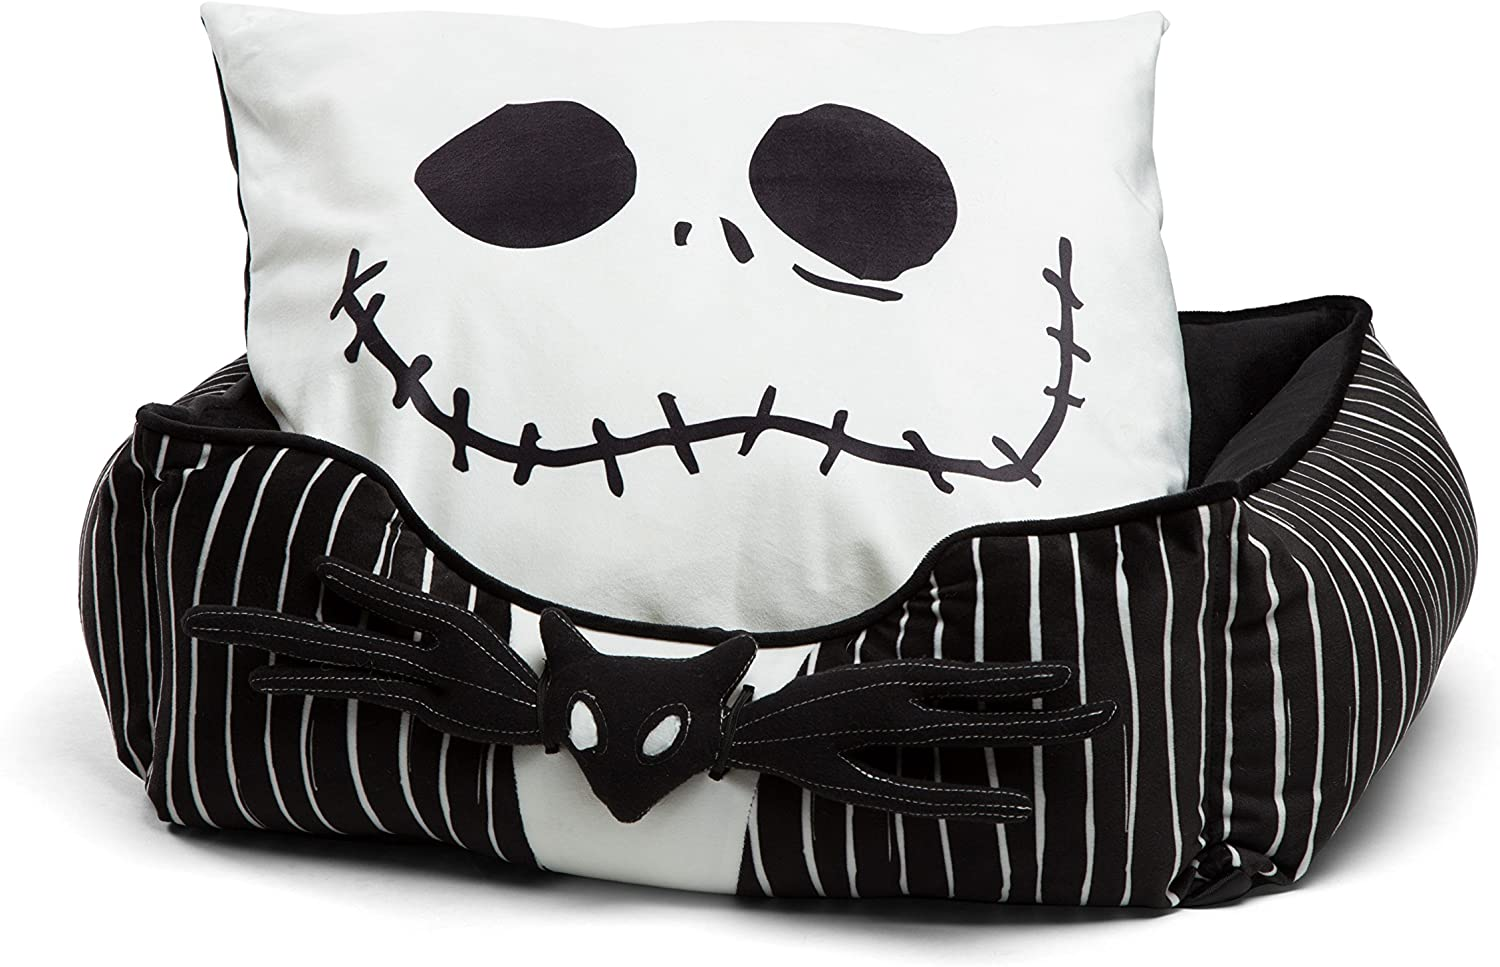 Nightmare Before Christmas Jack Skellington Bolstered Corded Cuddler Dog Cat Bed with Removable Toy Bat, Machine Washable